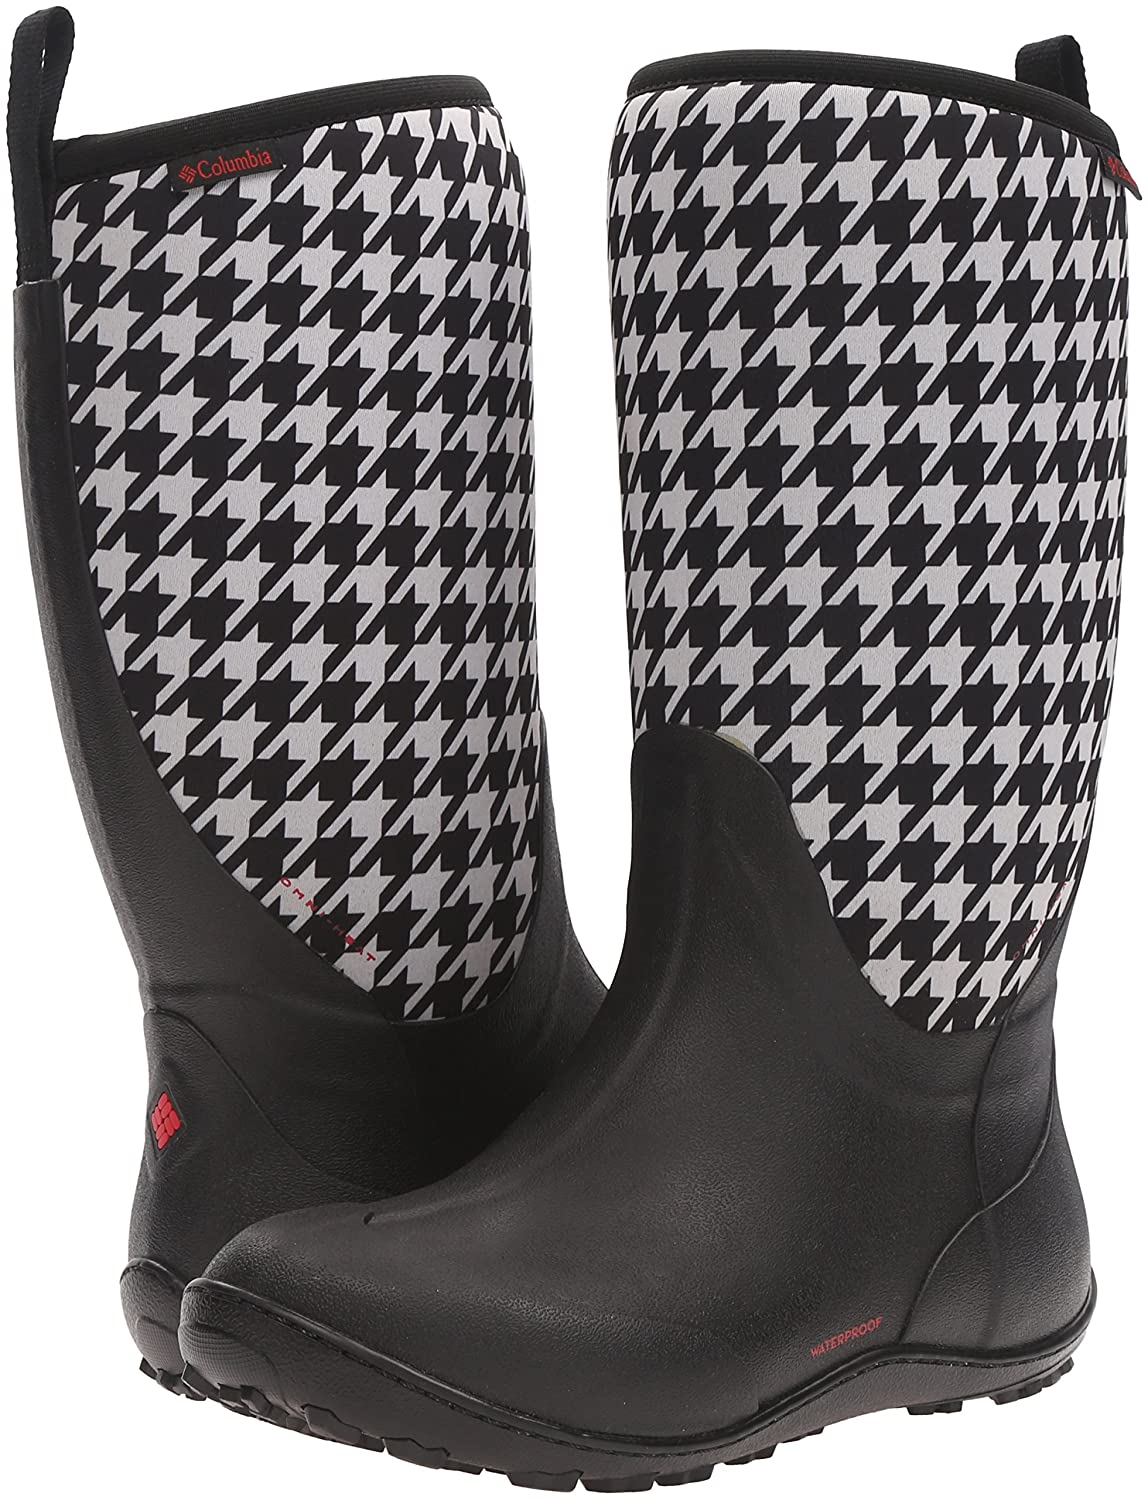 Columbia Women's Snowpow Tall Print Omni-Heat Snow Boot B0183QCA78 8 B(M) US|Black/Burnt Henna